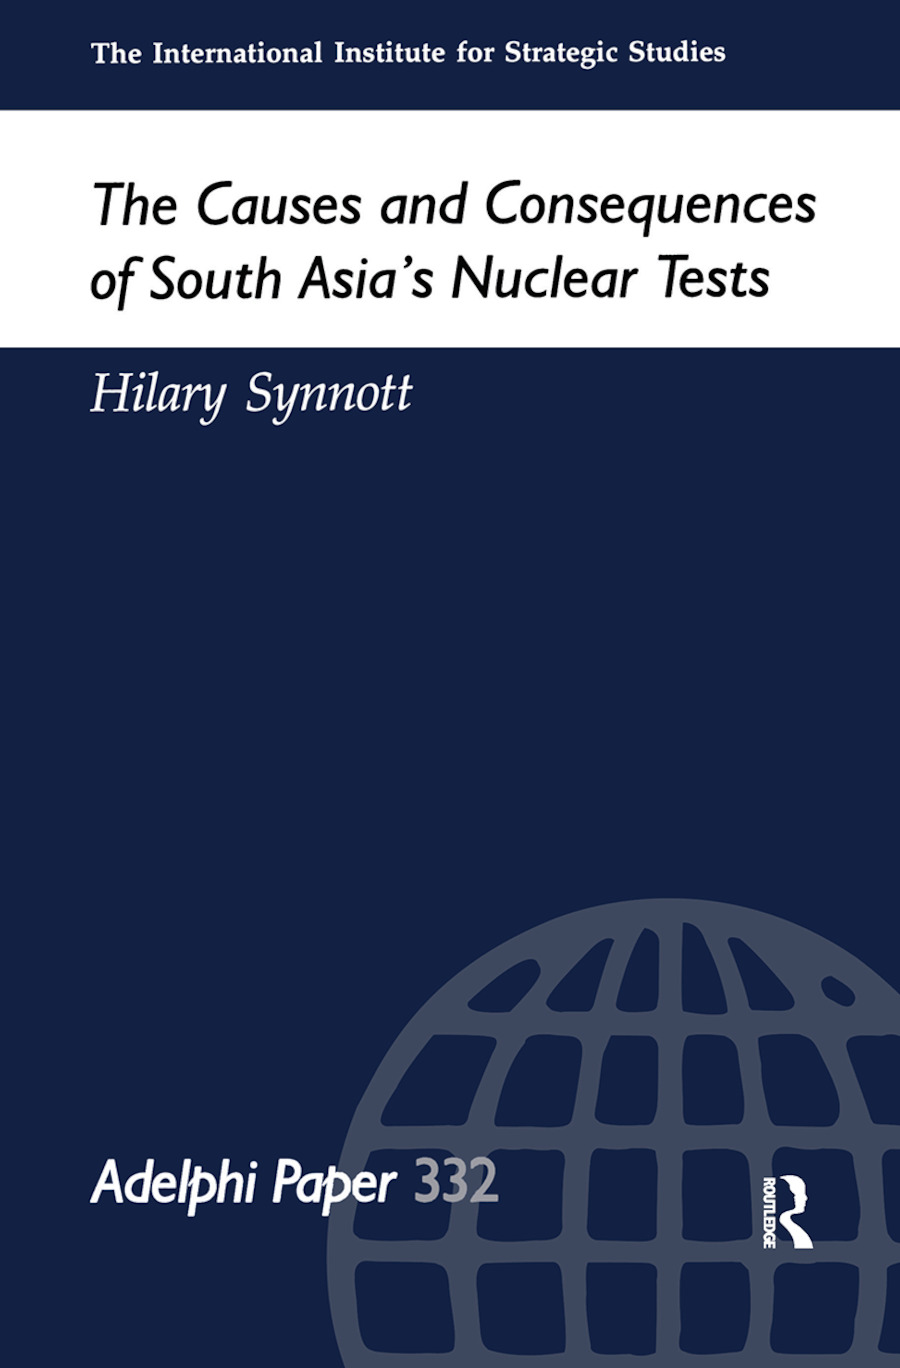 The Causes and Consequences of South Asia's Nuclear Tests